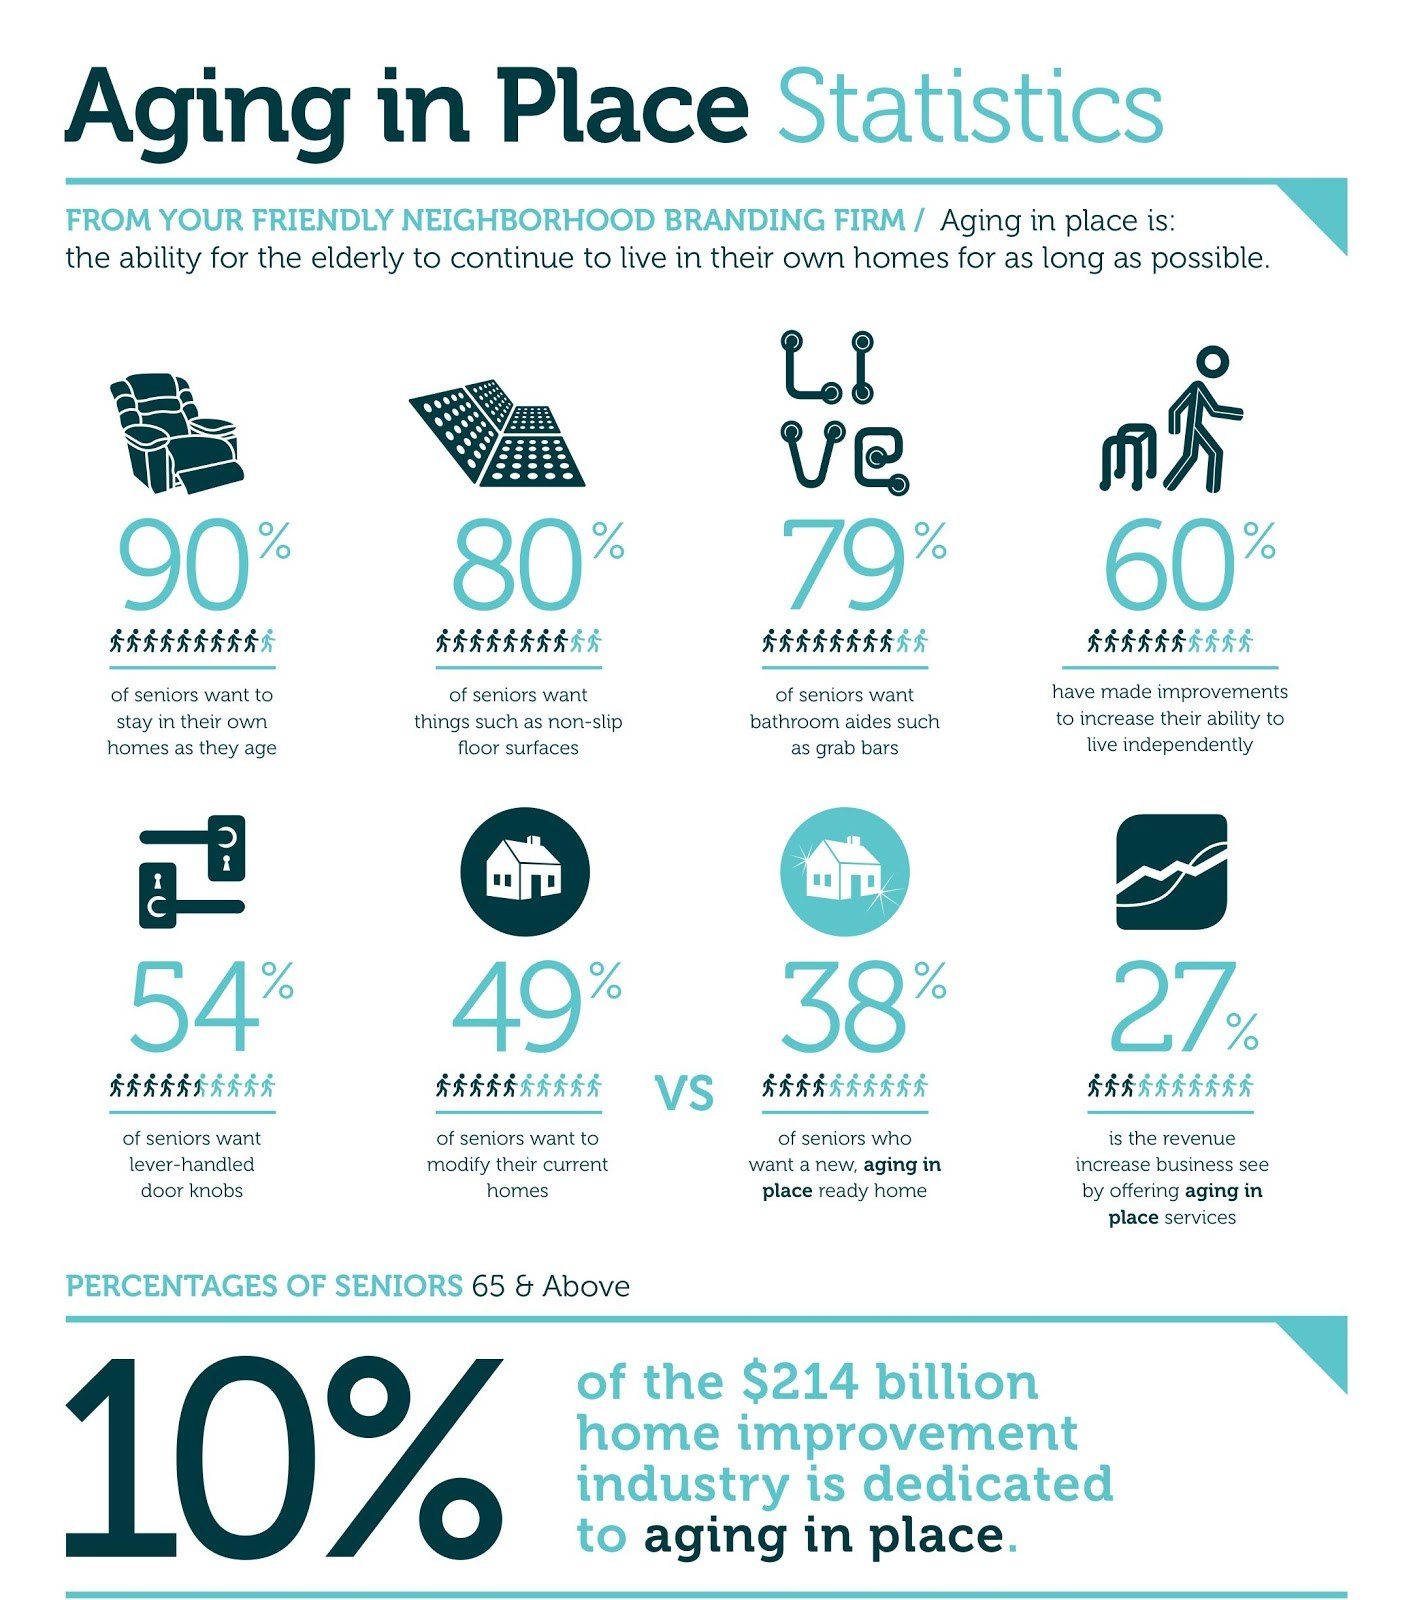 An infographic showing statistics of aging in place.